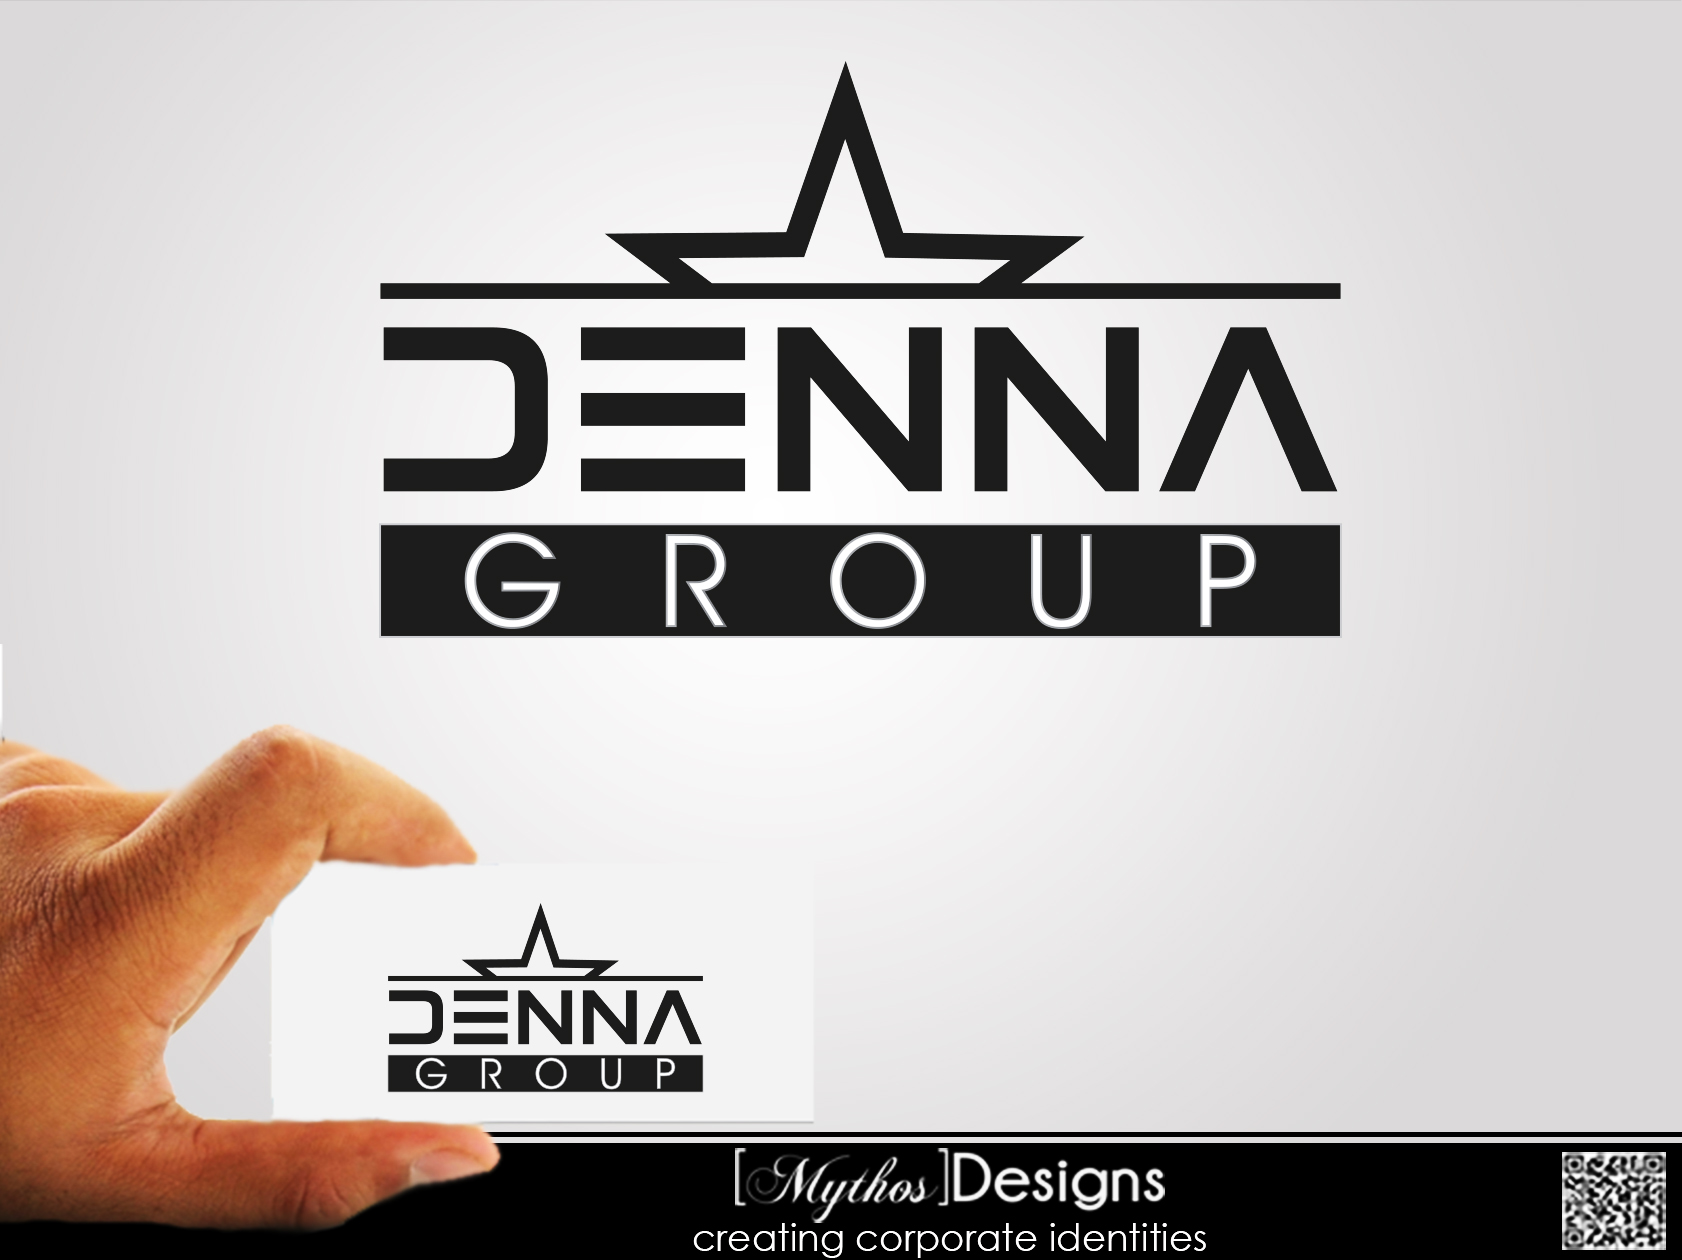 Logo Design by Mythos Designs - Entry No. 92 in the Logo Design Contest Denna Group Logo Design.